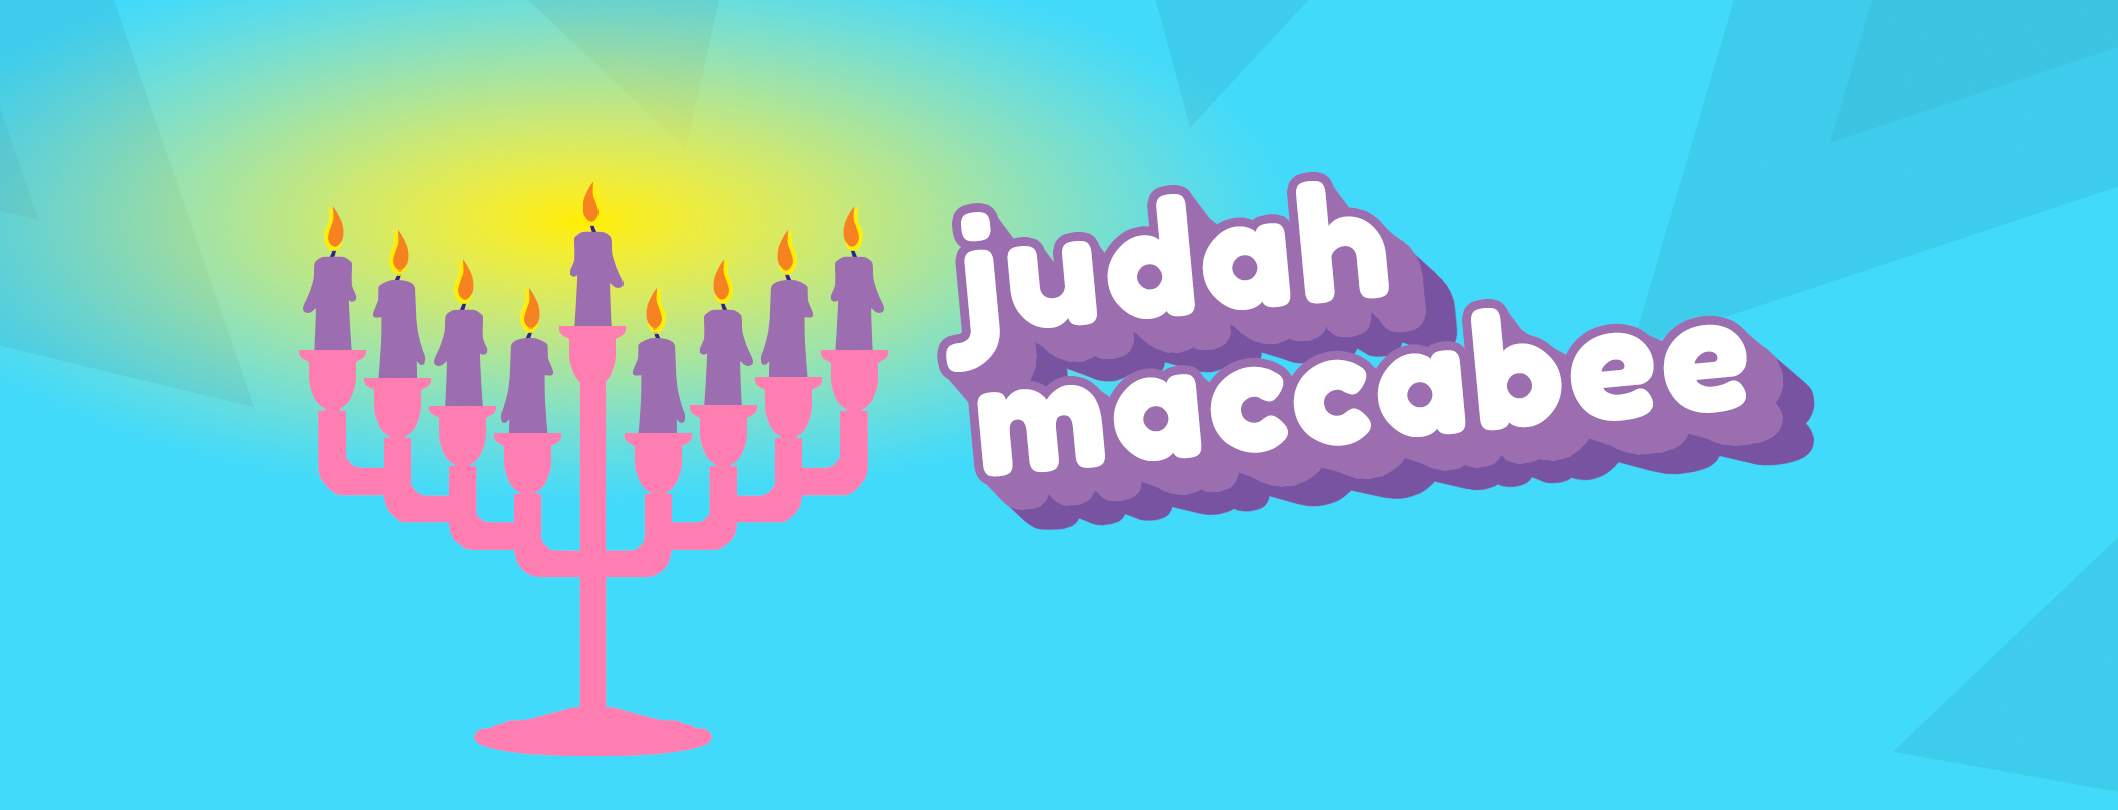 Judah Maccabee by Megan Bagala